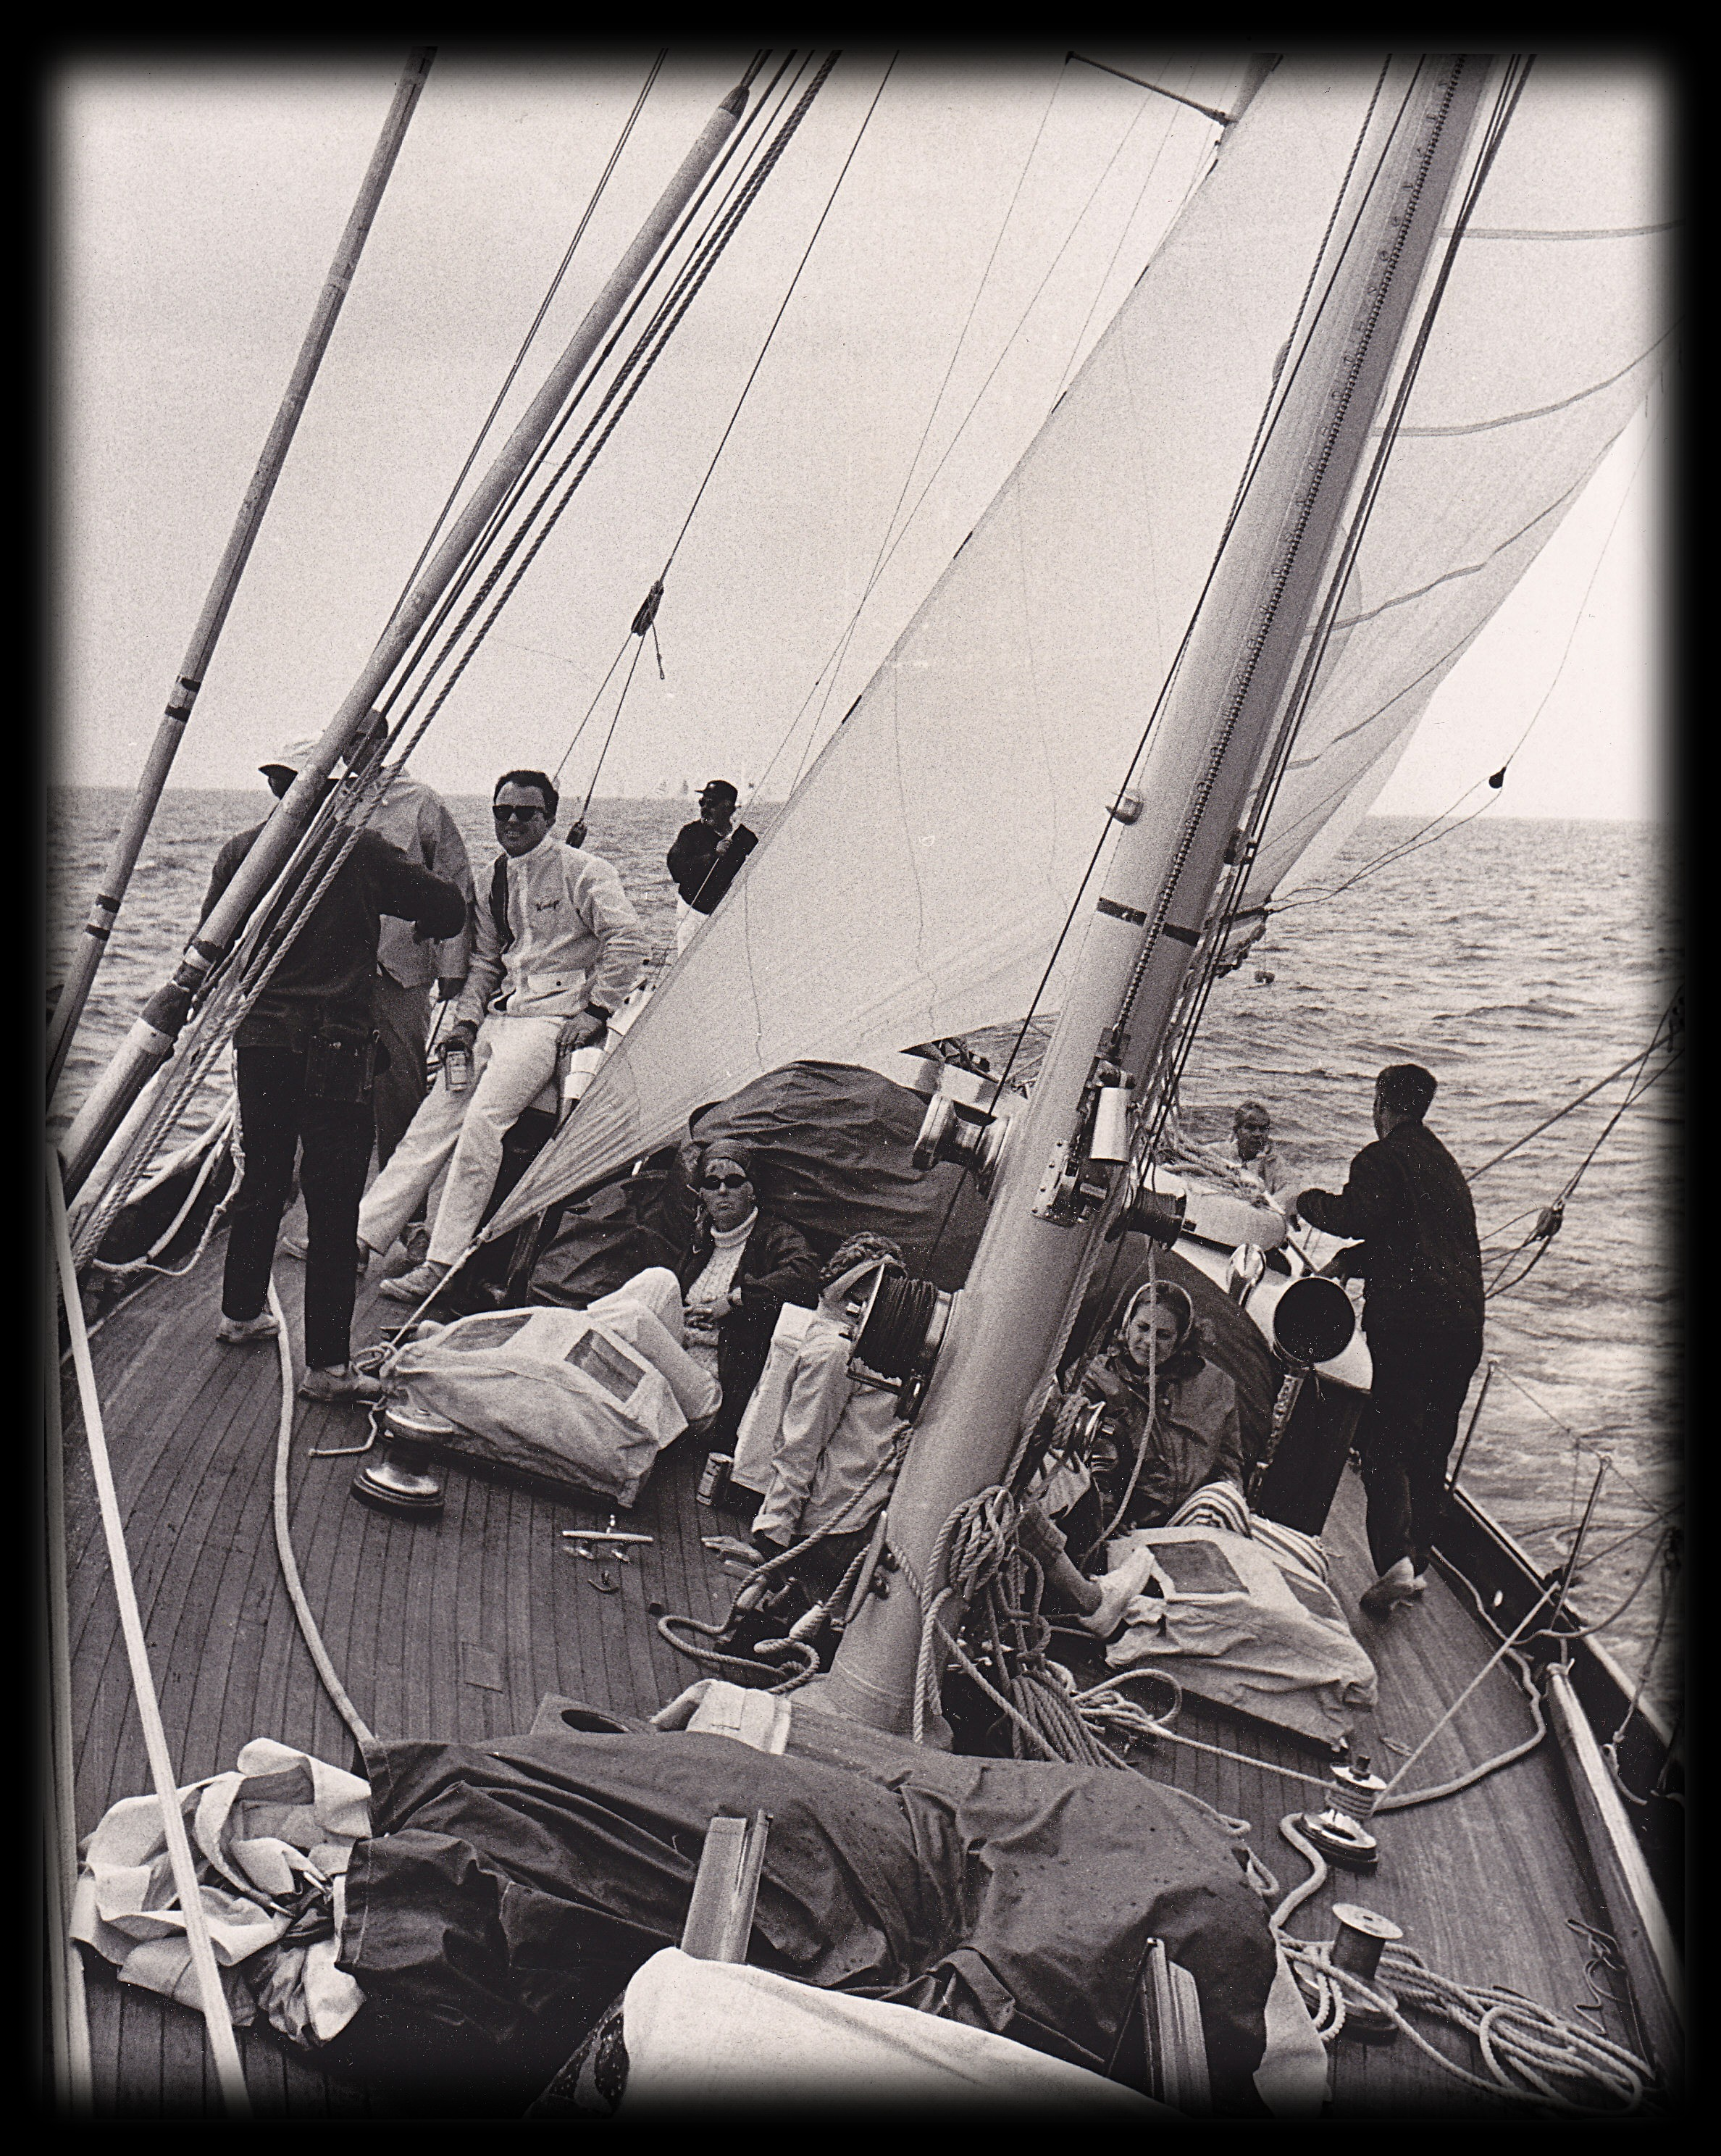 Photo of sailboat Windigo heeling over with crew on the deck.